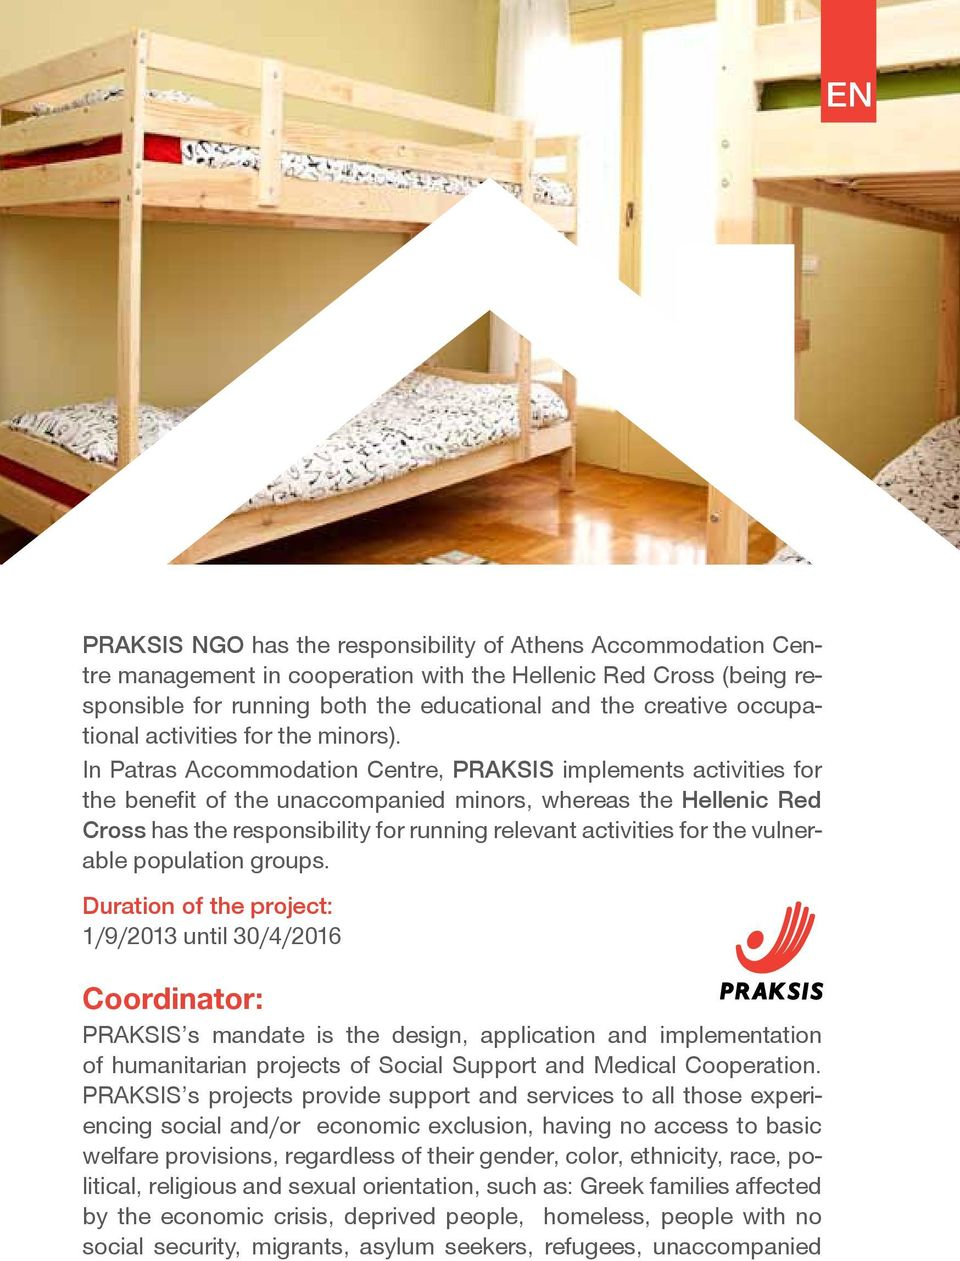 In Patras Accommodation Centre, PRAKSIS implements activities for the benefit of the unaccompanied minors, whereas the Hellenic Red Cross has the responsibility for running relevant activities for